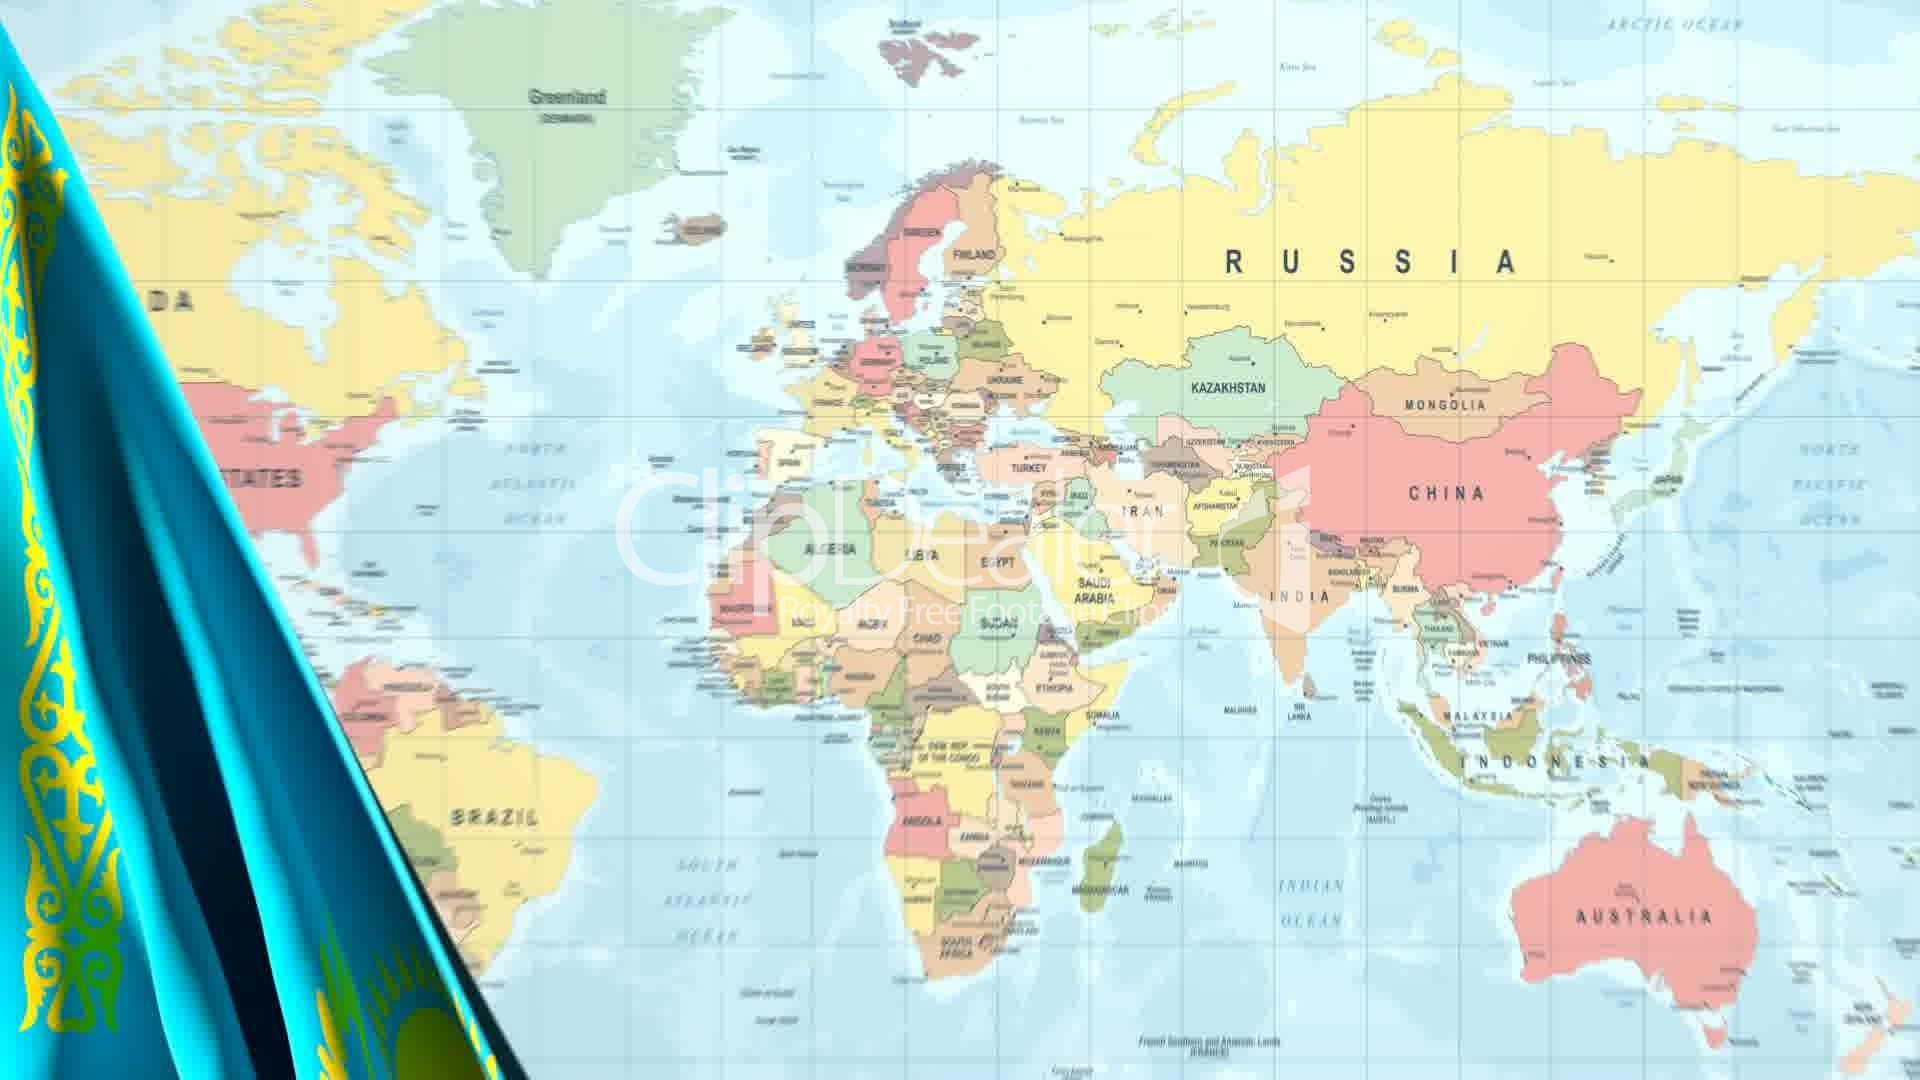 Animated Flag Of Kazakhstan With A Pin On A Worldmap Royalty Free